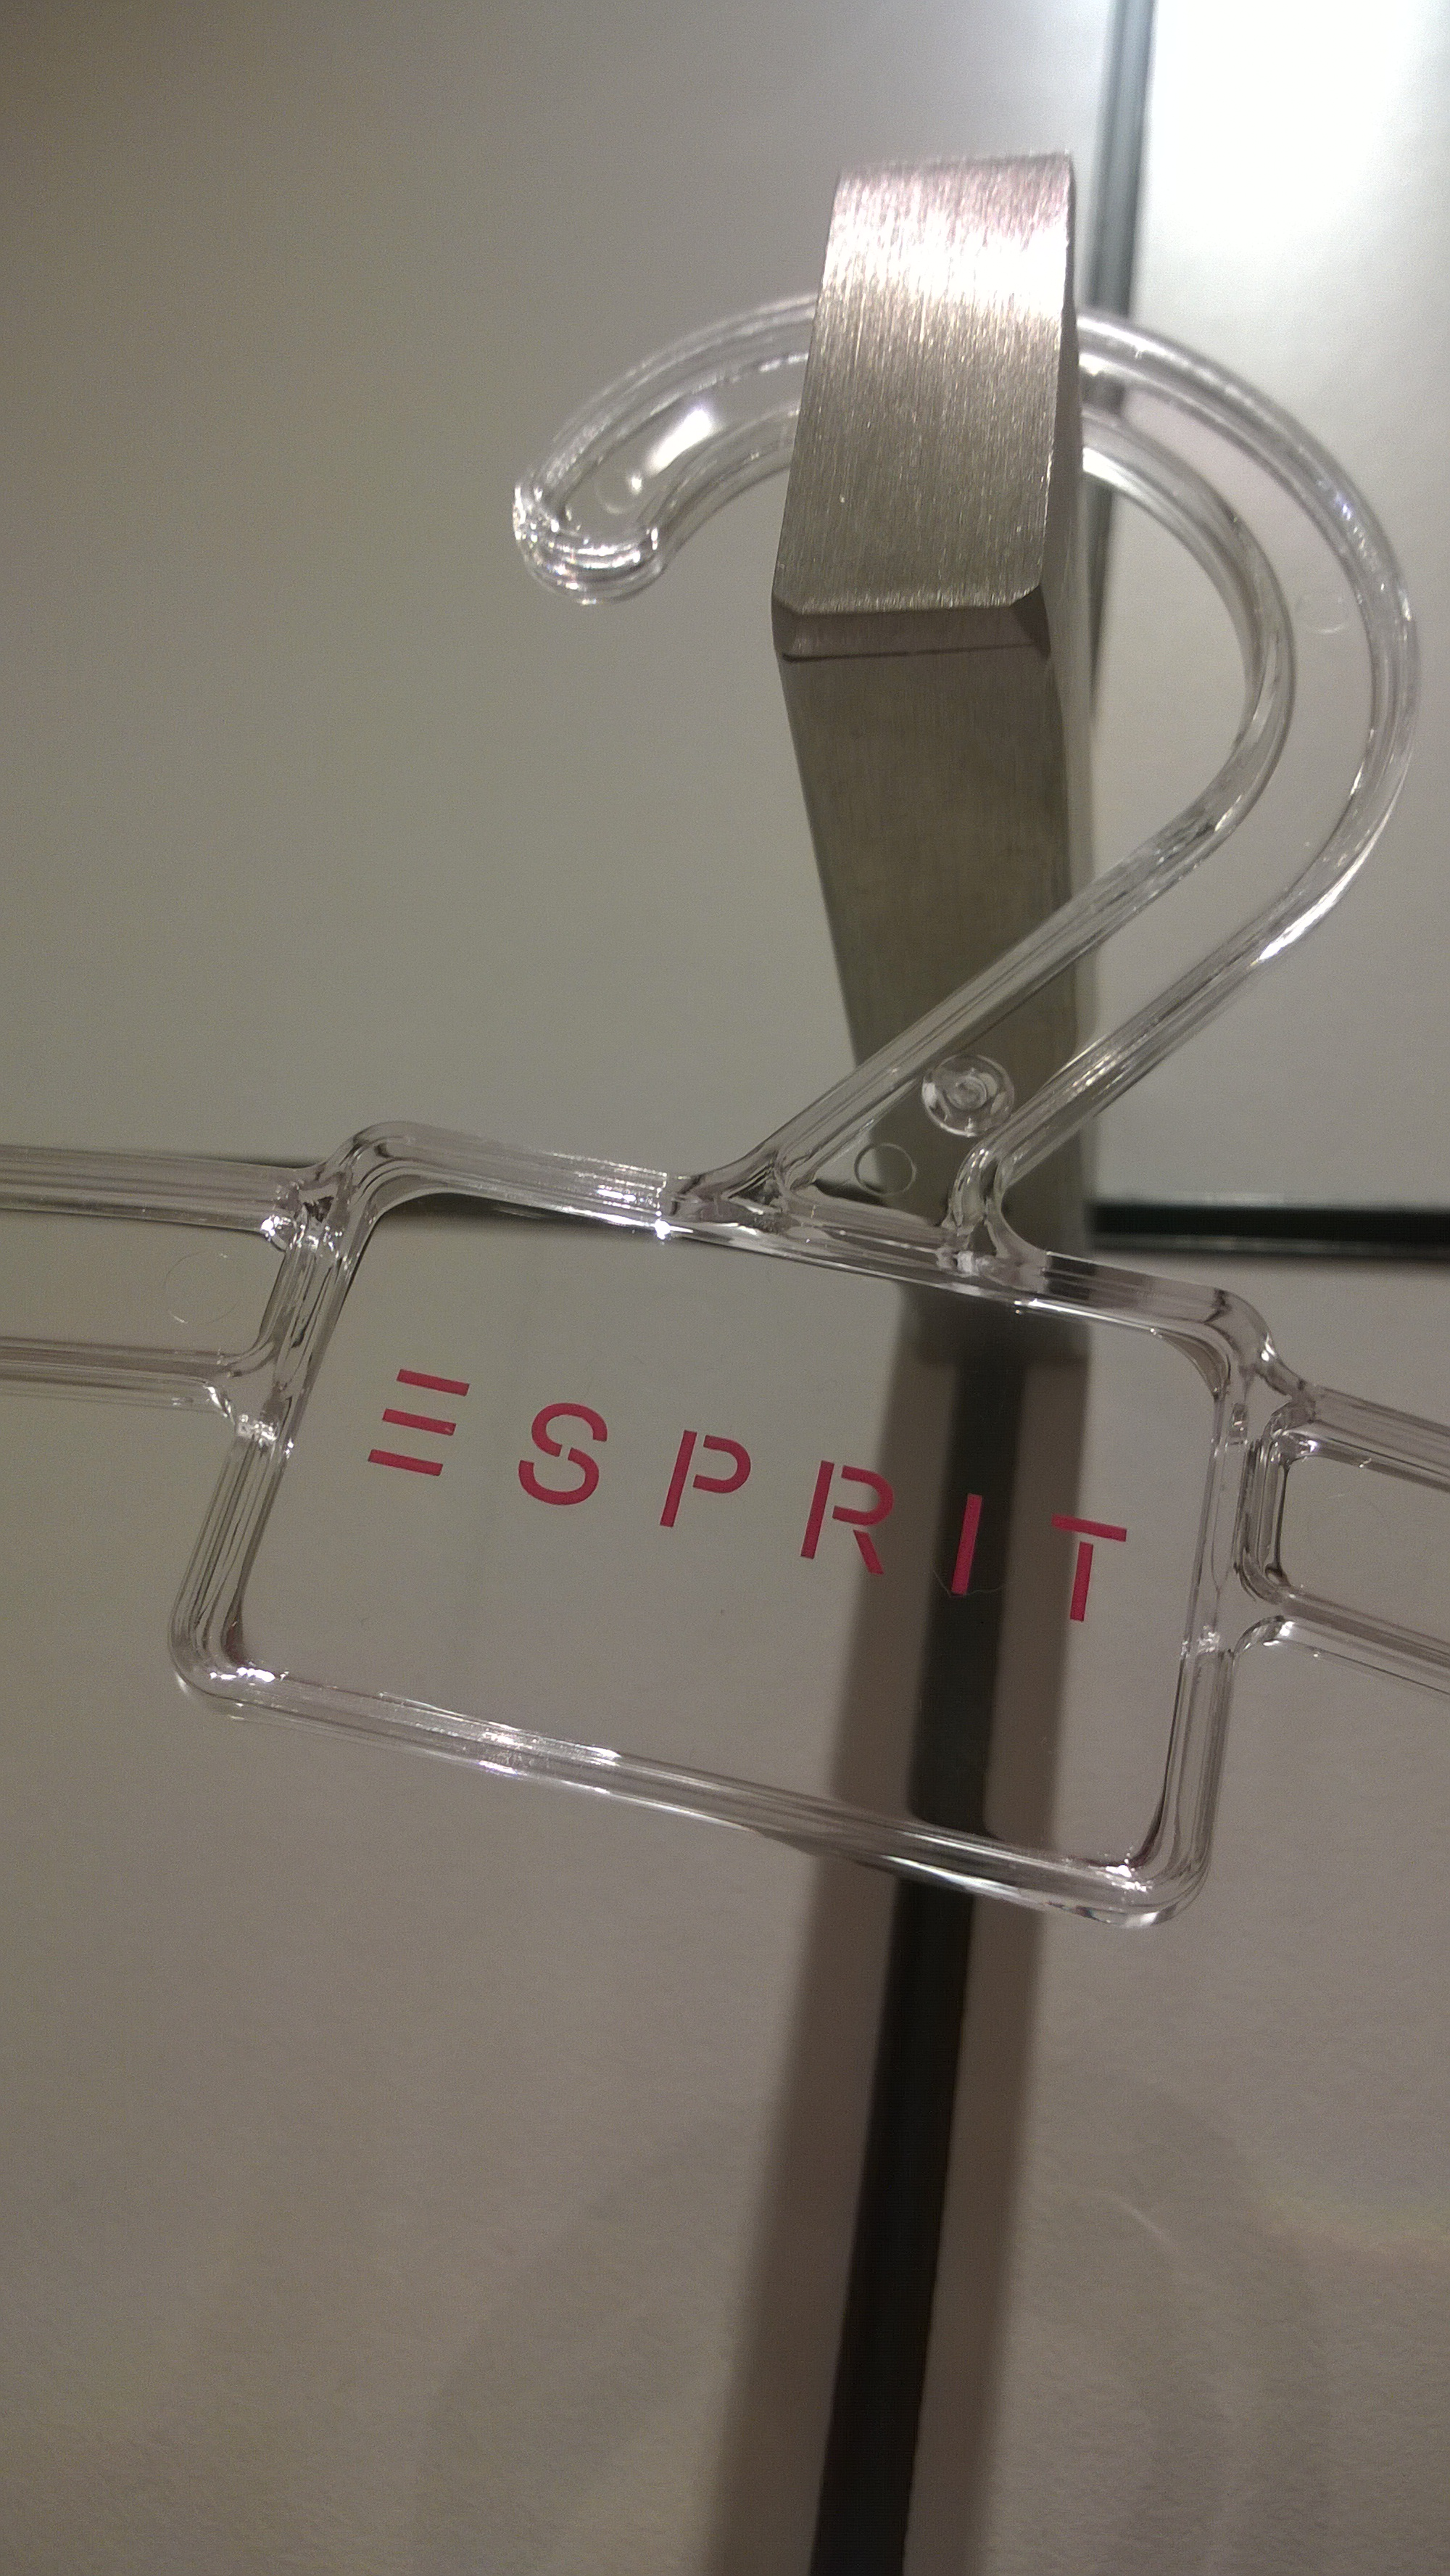 esprit swot analysis Esprit - a lifestyle brand aiming to become the european leader in the fashion   oliver (swot, financial analysis, portfolio evaluation, brand performance.